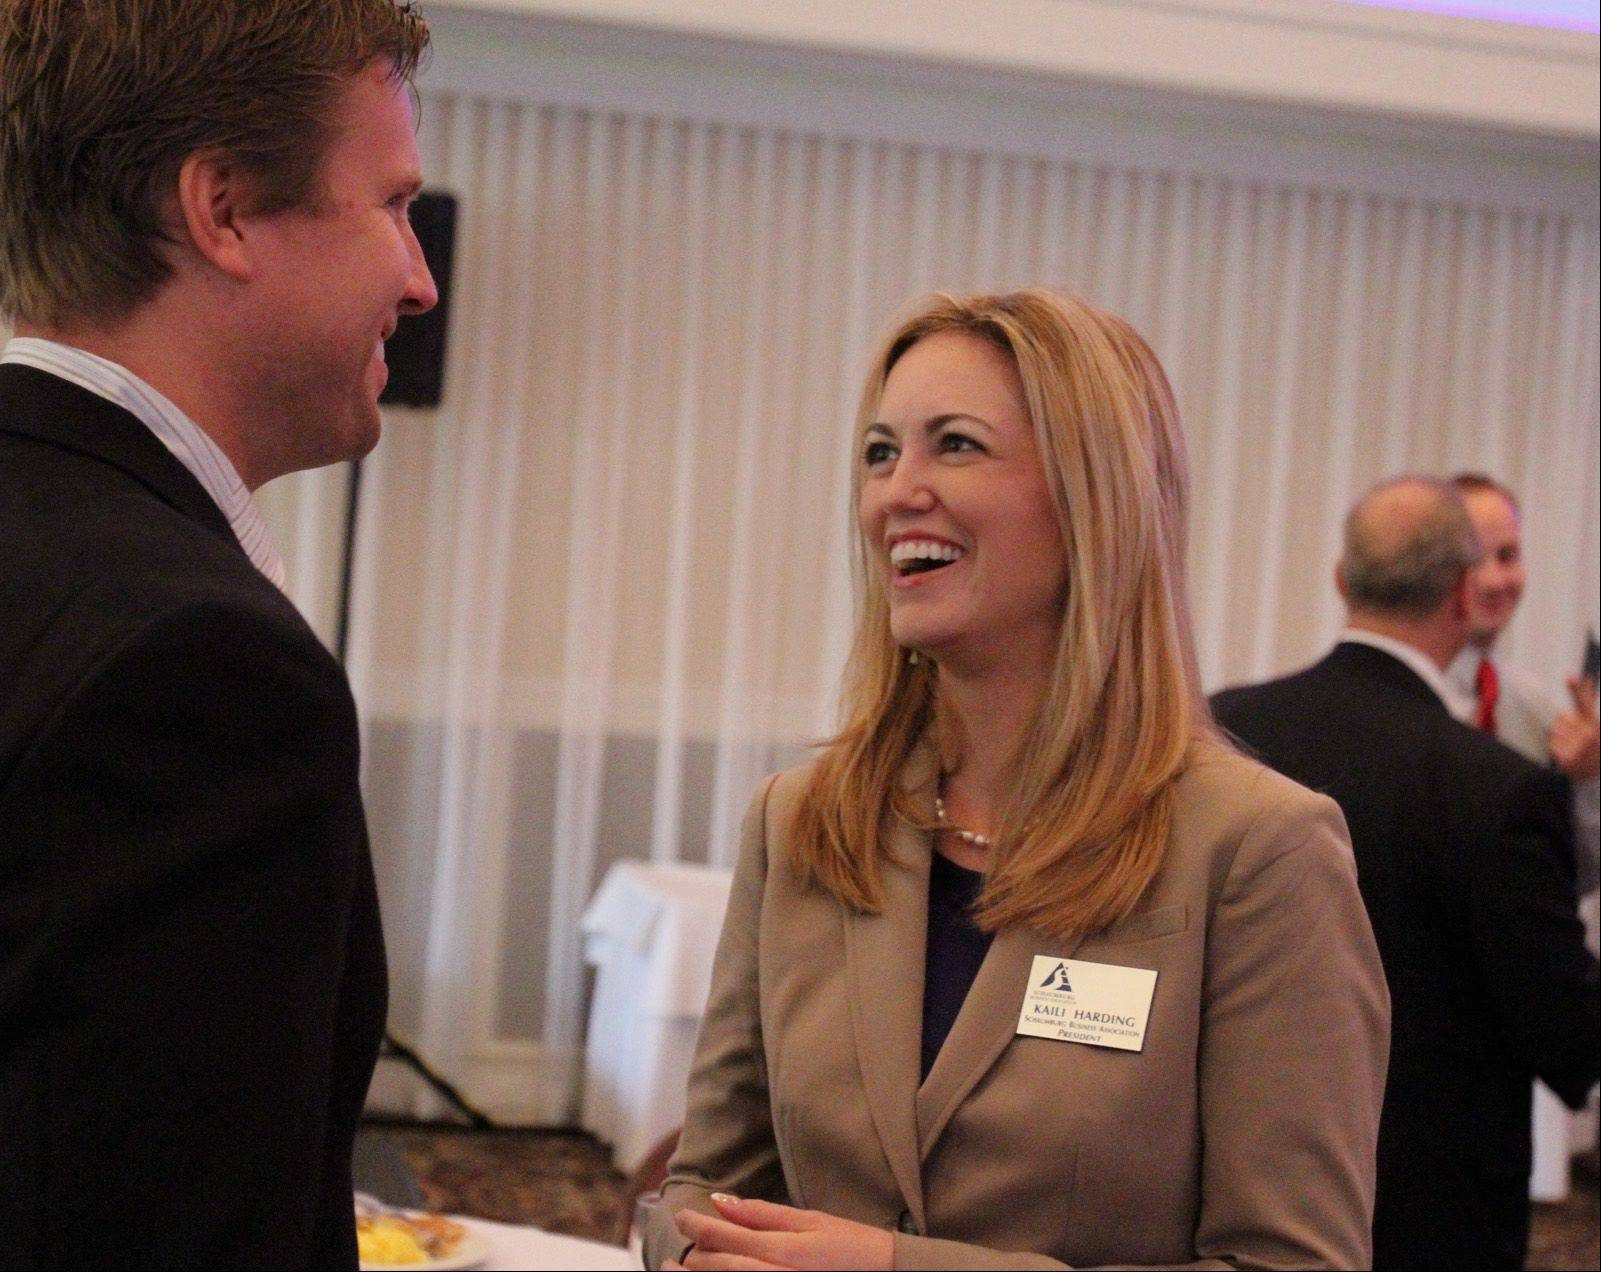 New Schaumburg Business Association President Kaili Harding speaks with David Kaminski at the association's monthly Good Morning Schaumburg breakfast on Tuesday. Harding took over as the association's president last month.